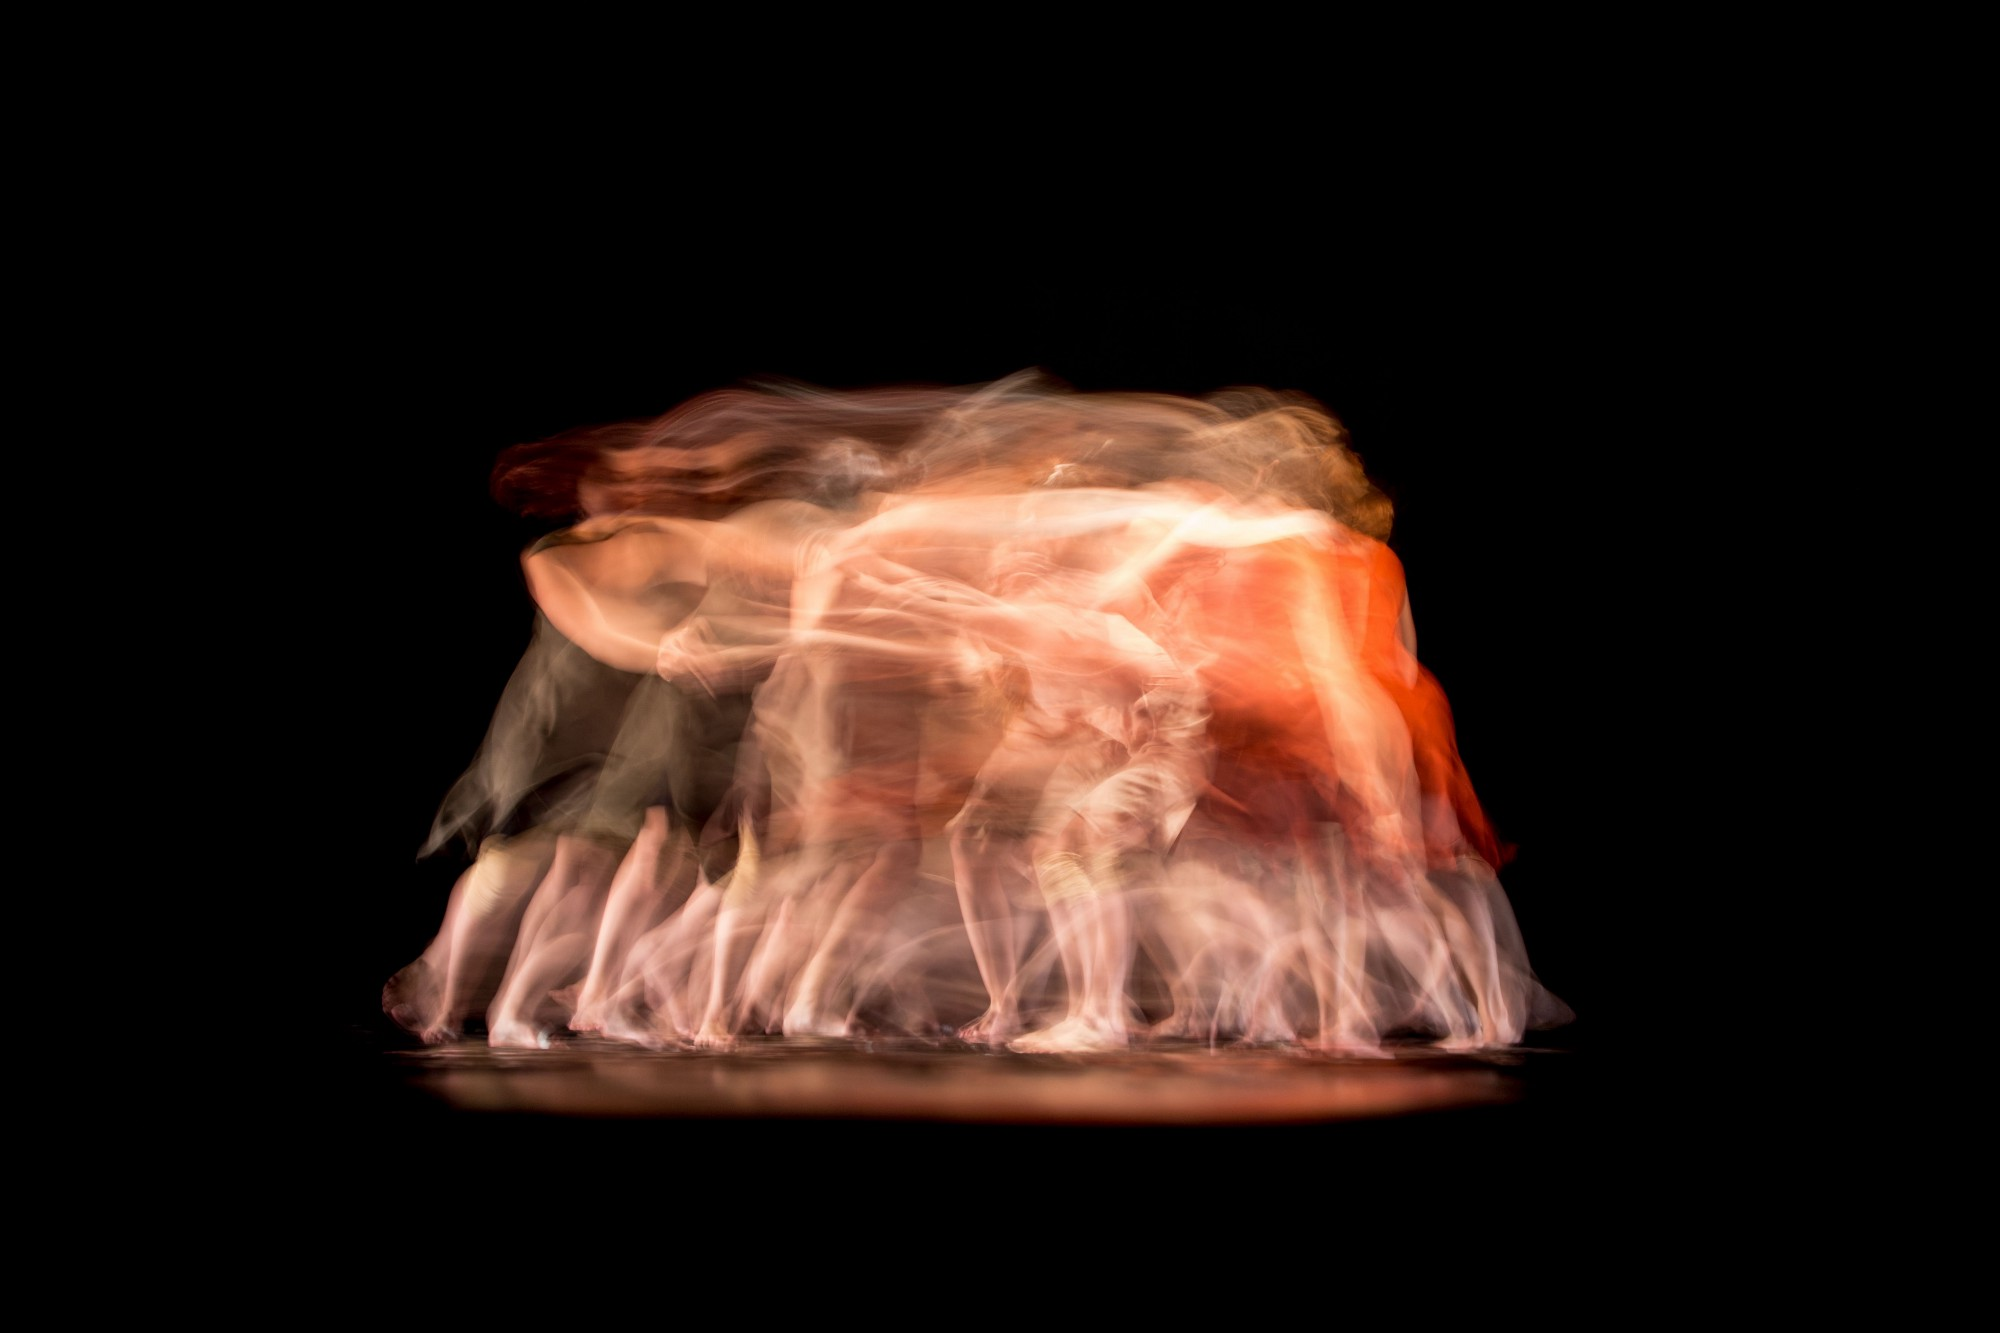 ballet dancers on stage merge in slow shutter effect